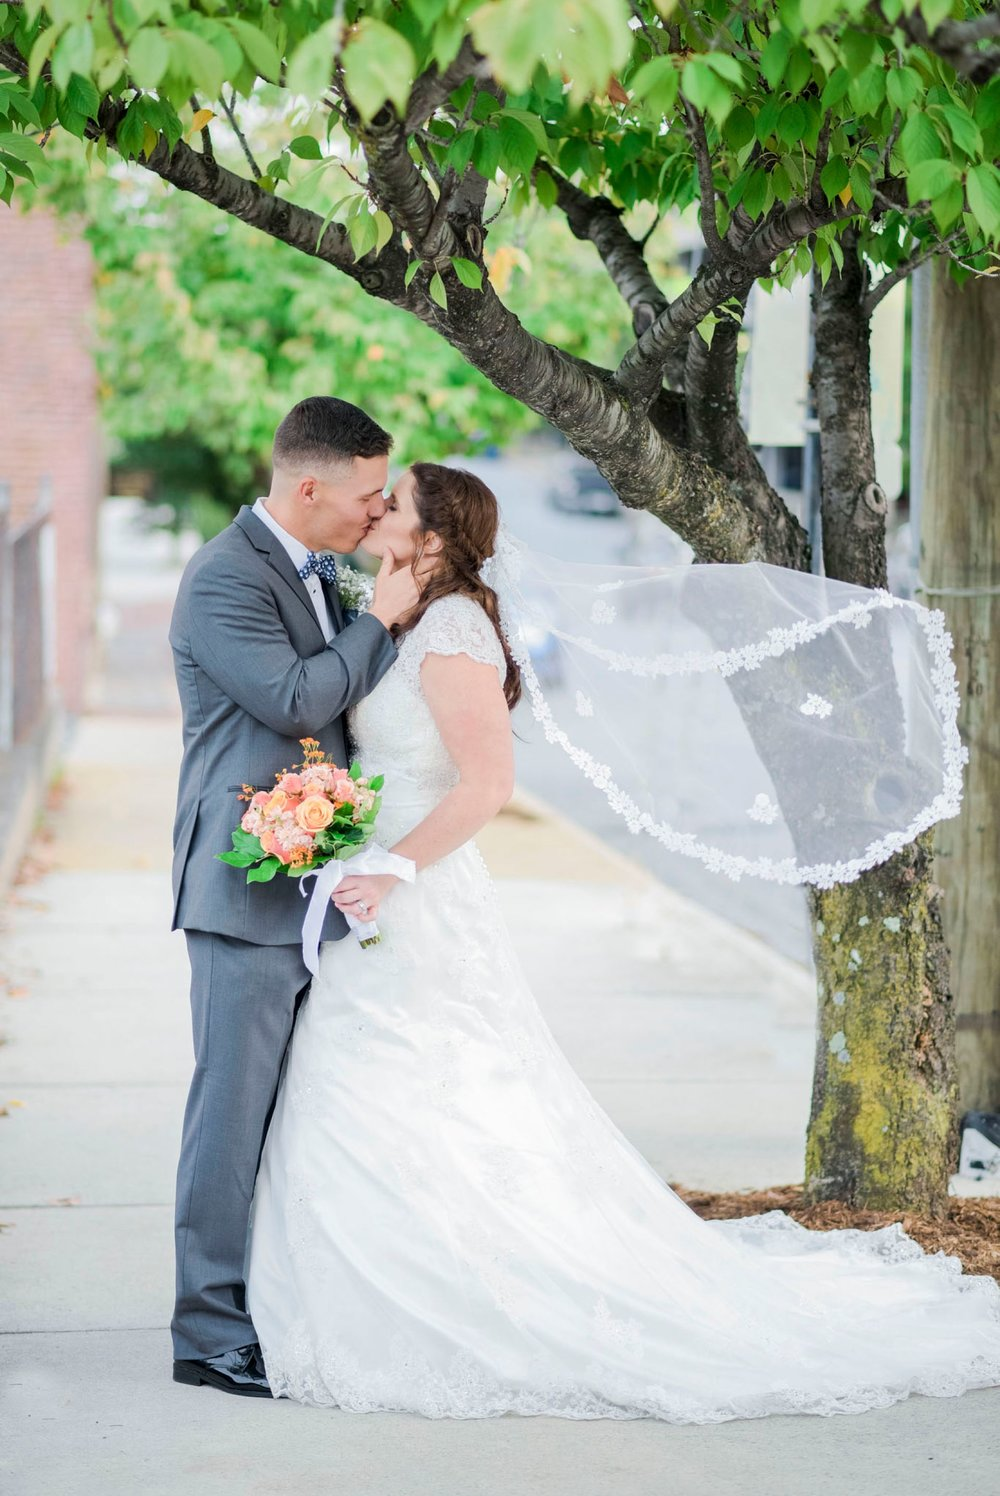 Trescaon8th_DowntownLynchburg_Virginiaweddingphotographer 62.jpg